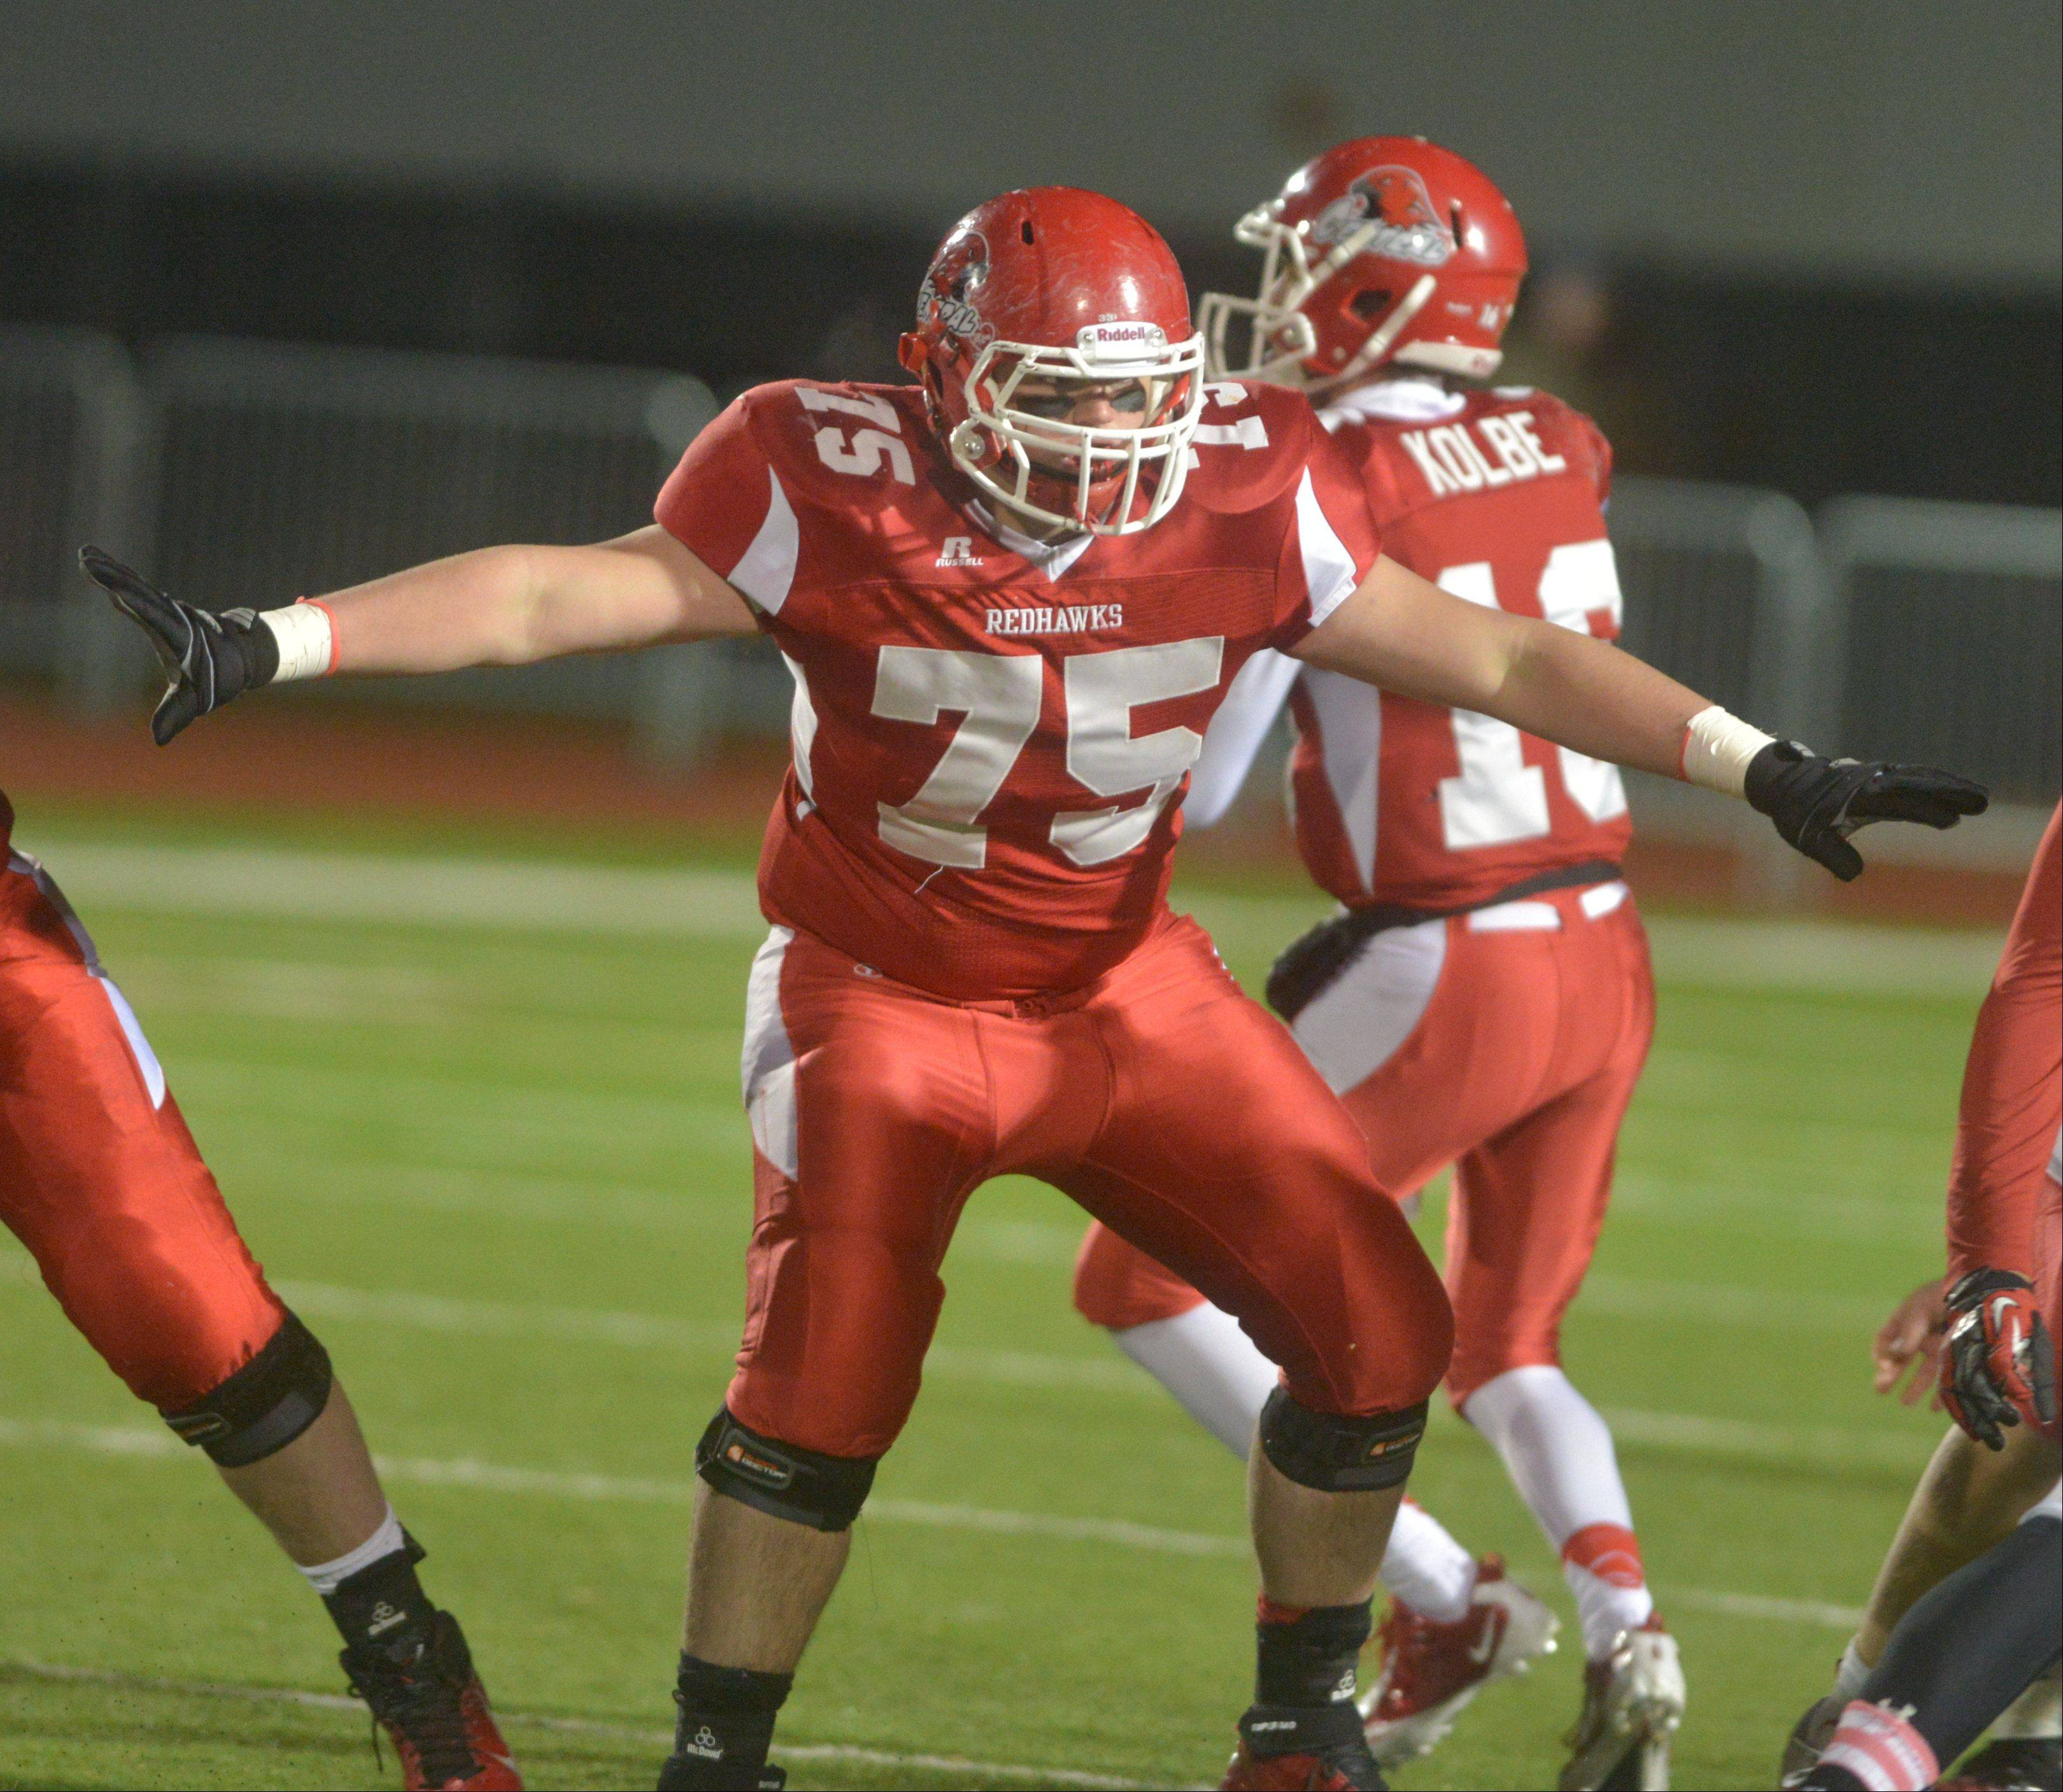 From disappointment to elation for Naperville Central